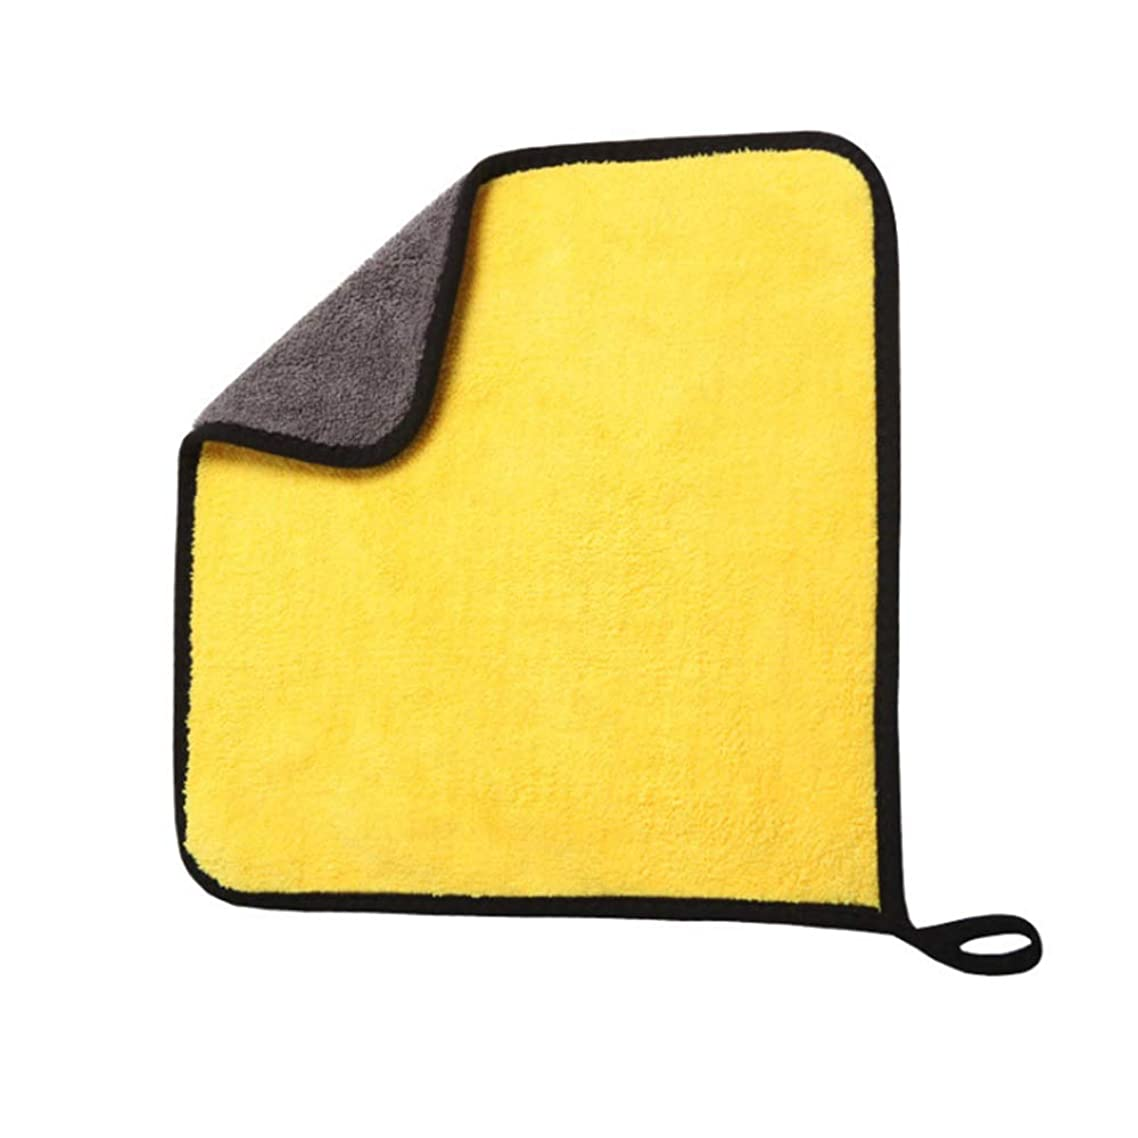 ZFW Cleaning Cloth Car Wash Towel Thickening Water-Absorbing Supplies Double-Sided High-Density Large Lint Strong Decontamination